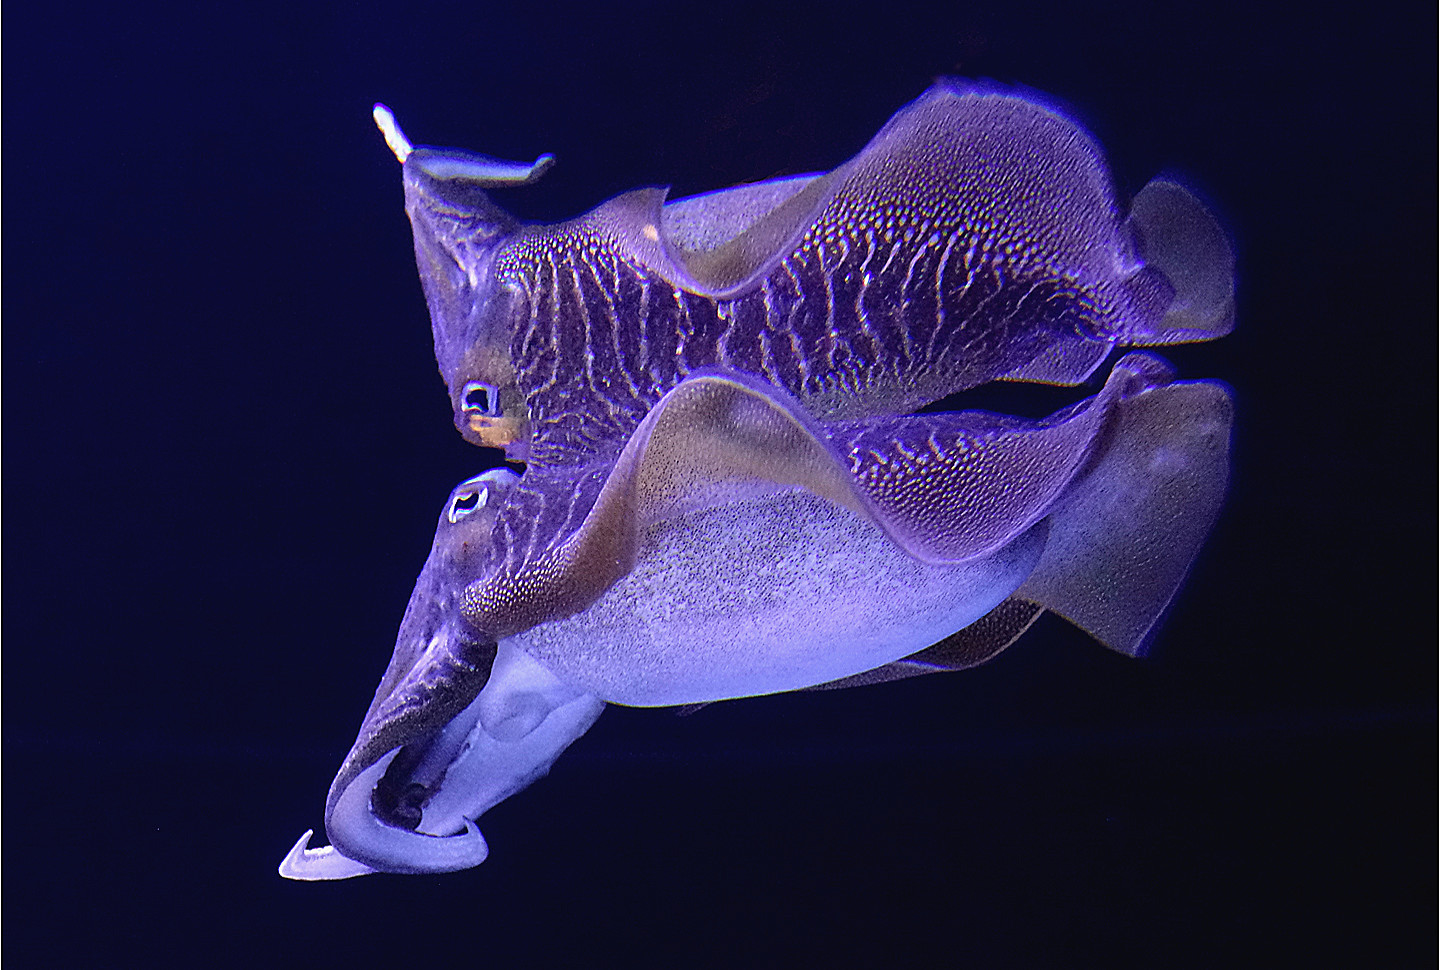 Cuttlefish by Dave S